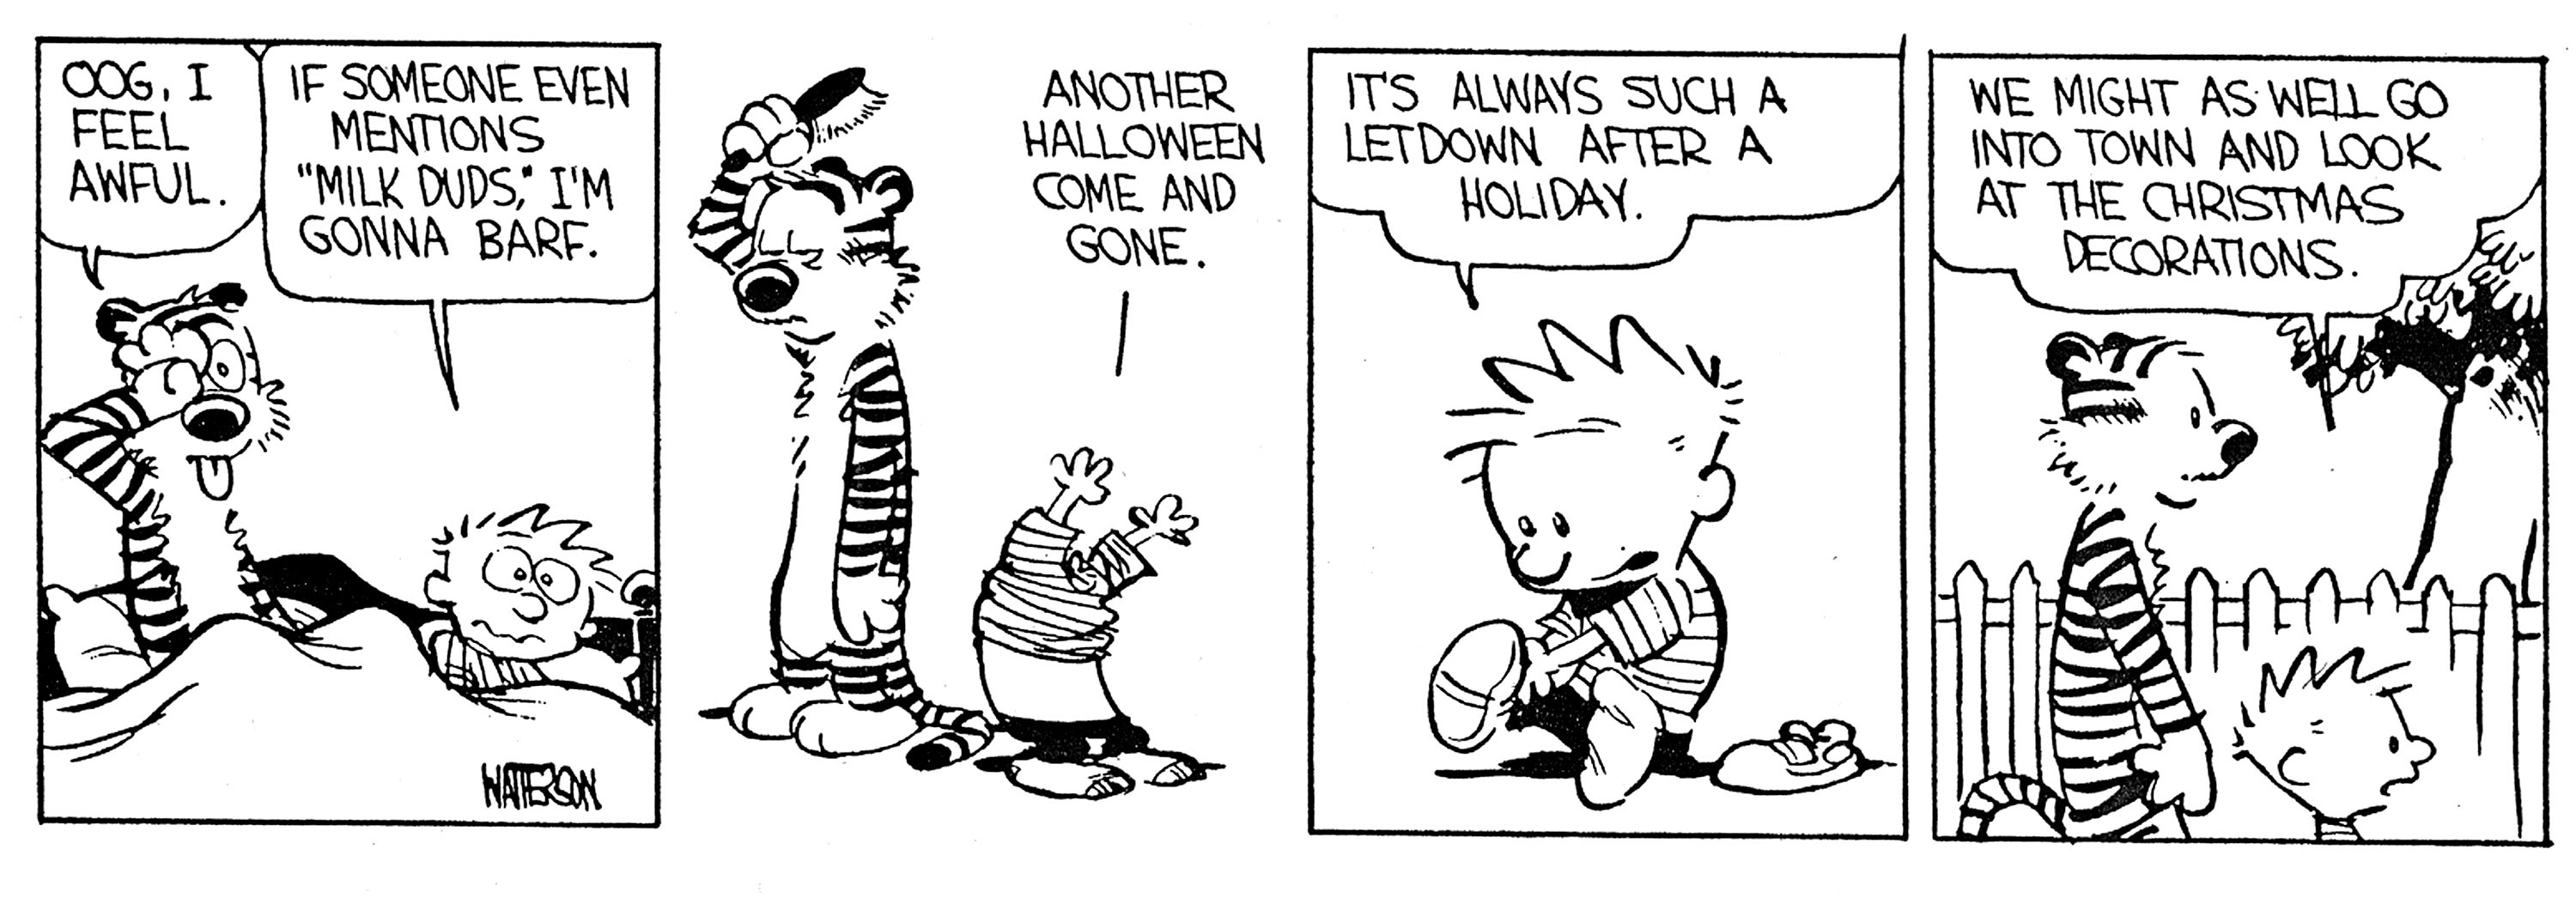 Meadow Point Matthew5c Calvin And Hobbes Best Info Page